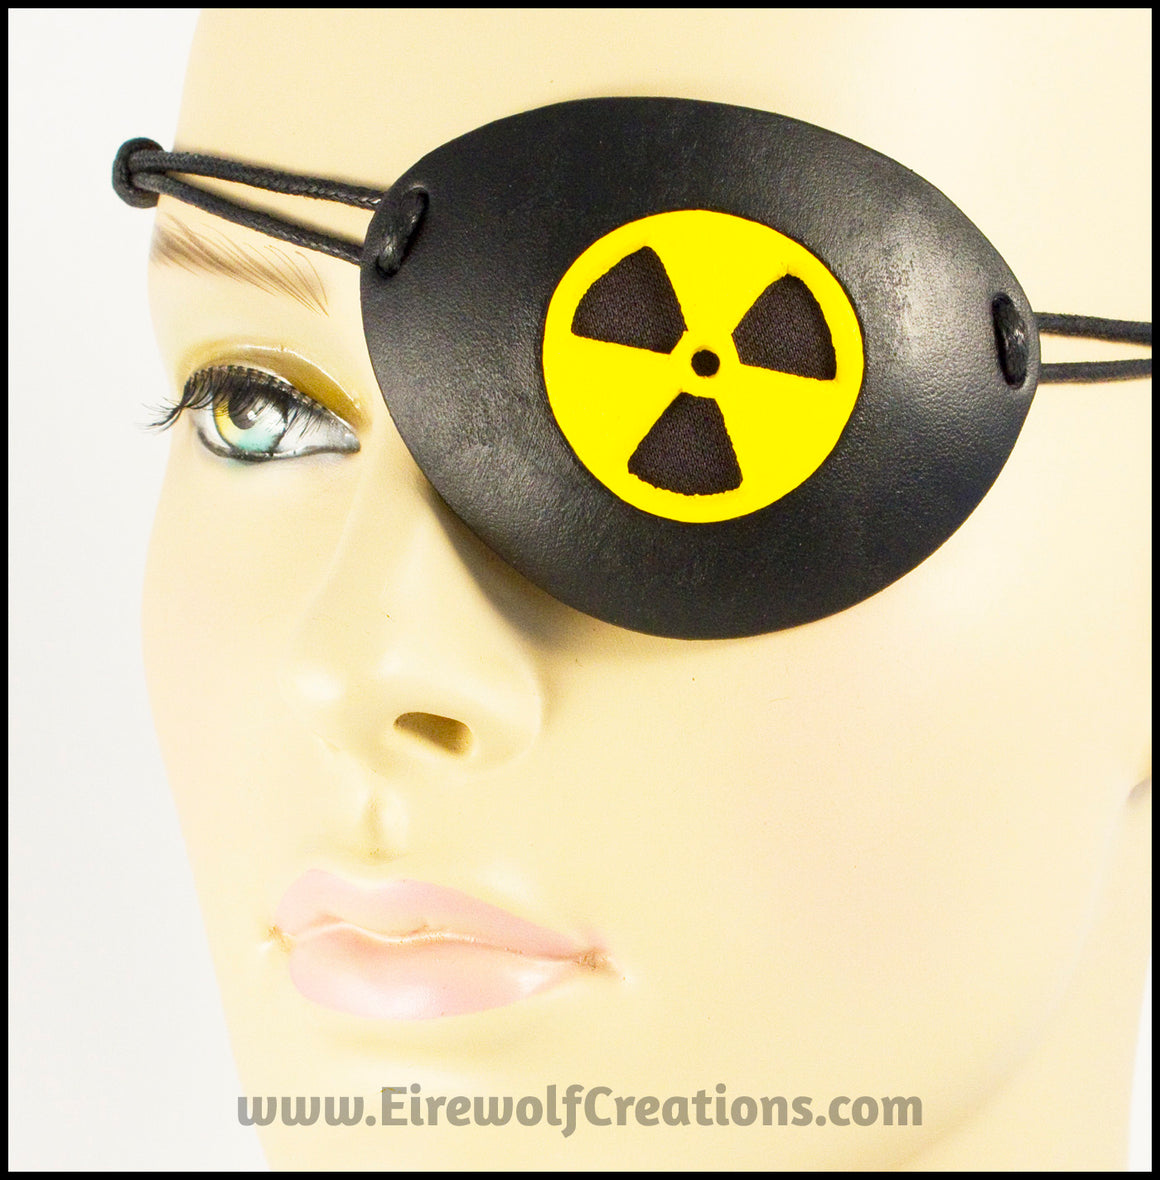 A handmade leather masquerade costume eye patch with a radiation hazard symbol cut out of the leather, painted black and bright yellow and backed with transparent black fabric to allow some visibility. By Erin Metcalf of Eirewolf Creations.